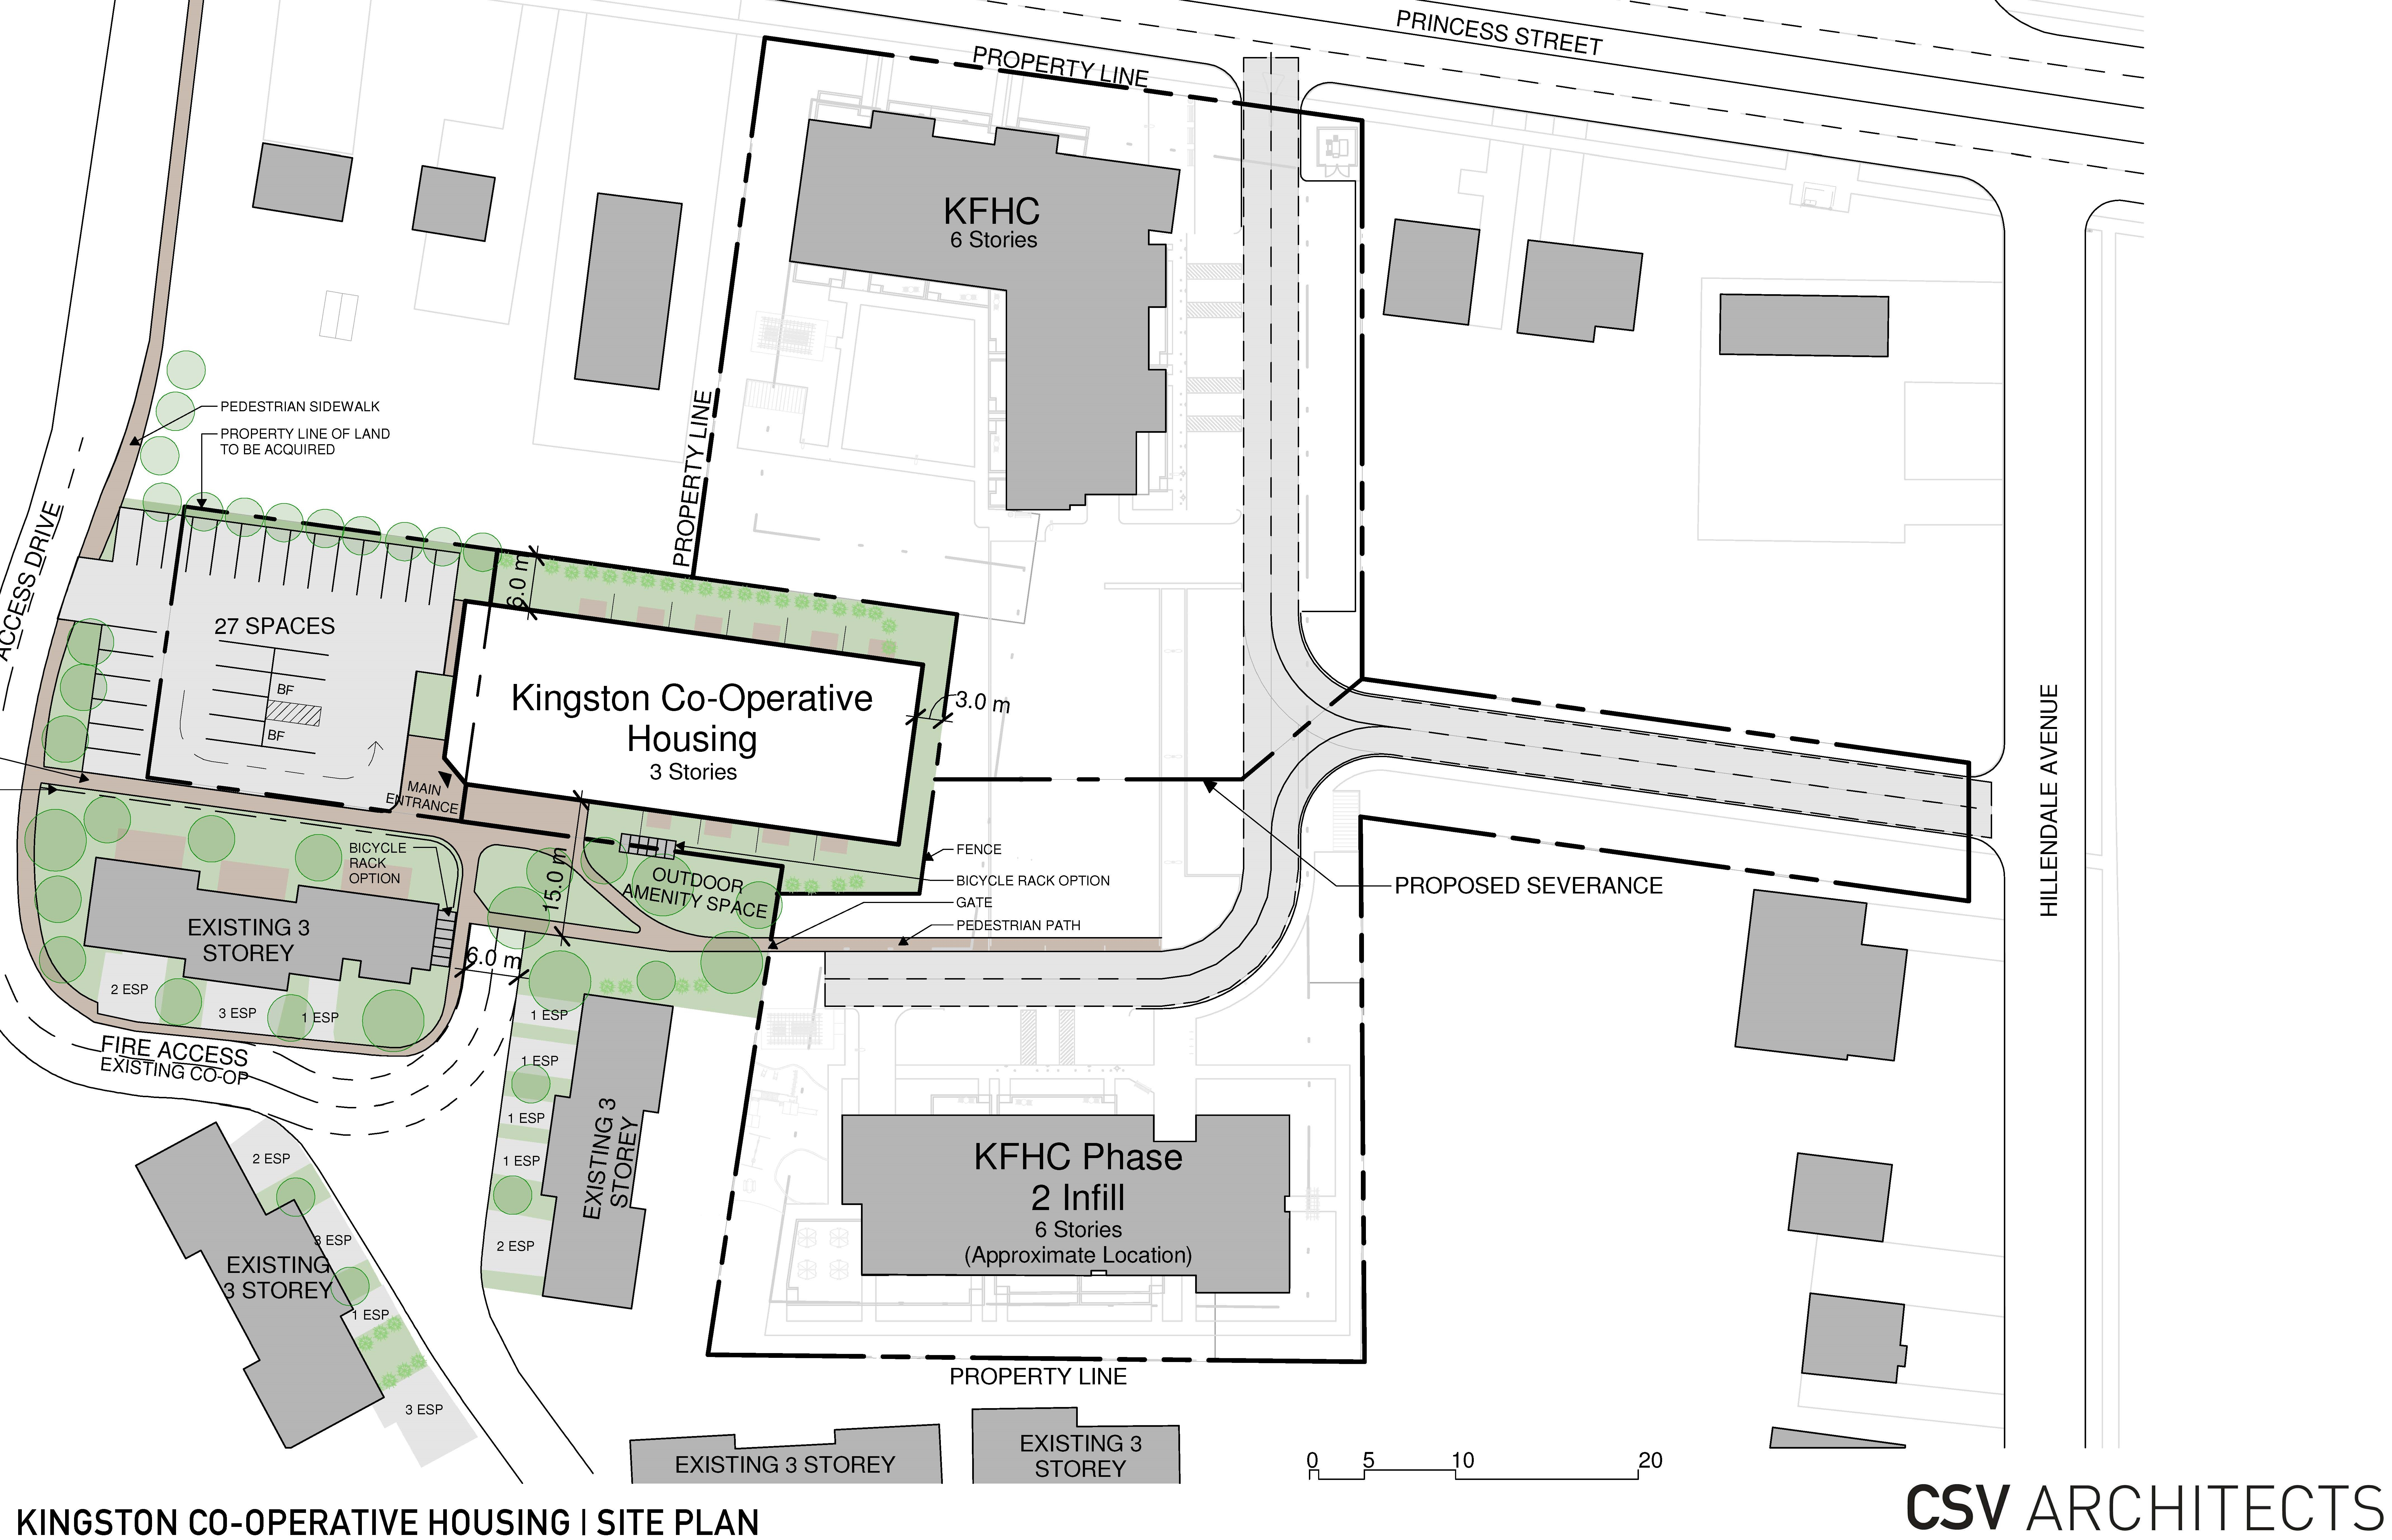 A site plan showing the location of current and future Kingston Co-op buildings